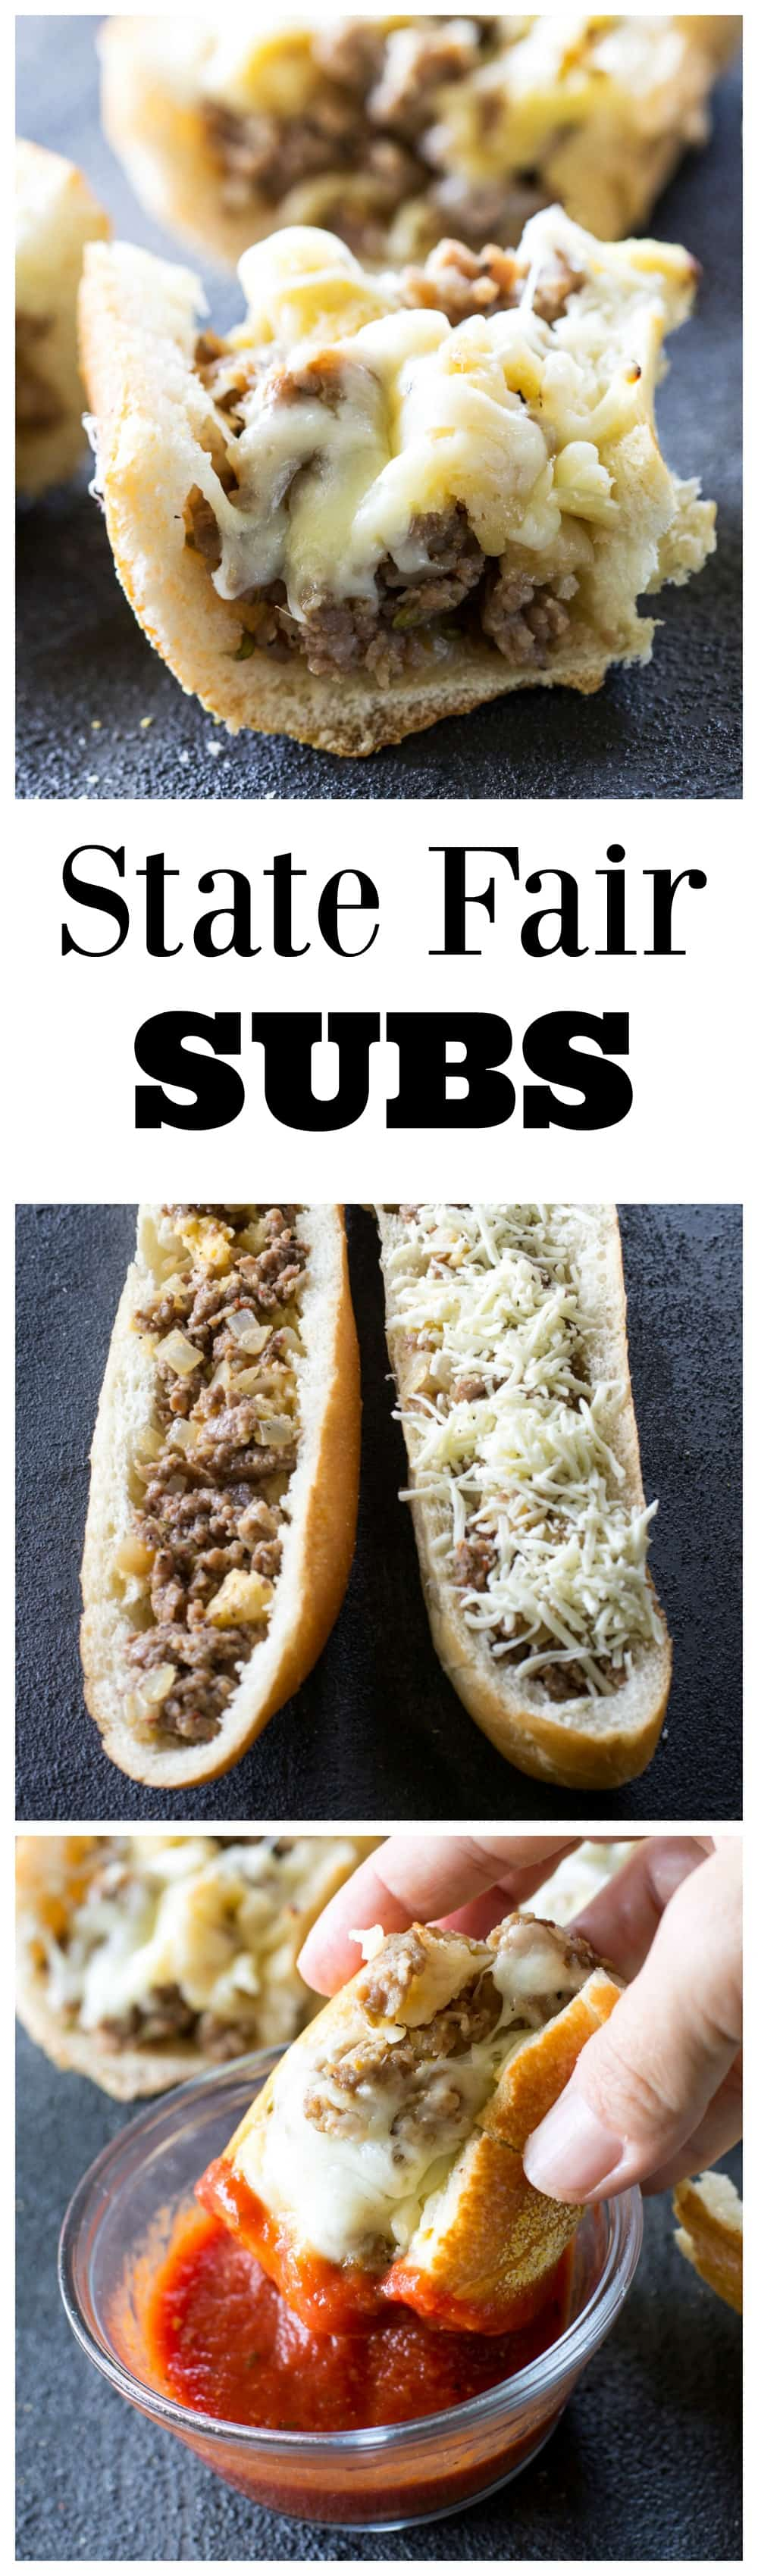 State Fair Subs - sausage and bread cubes tossed together in an egg milk mixture and baked until toasty! the-girl-who-ate-everything.com